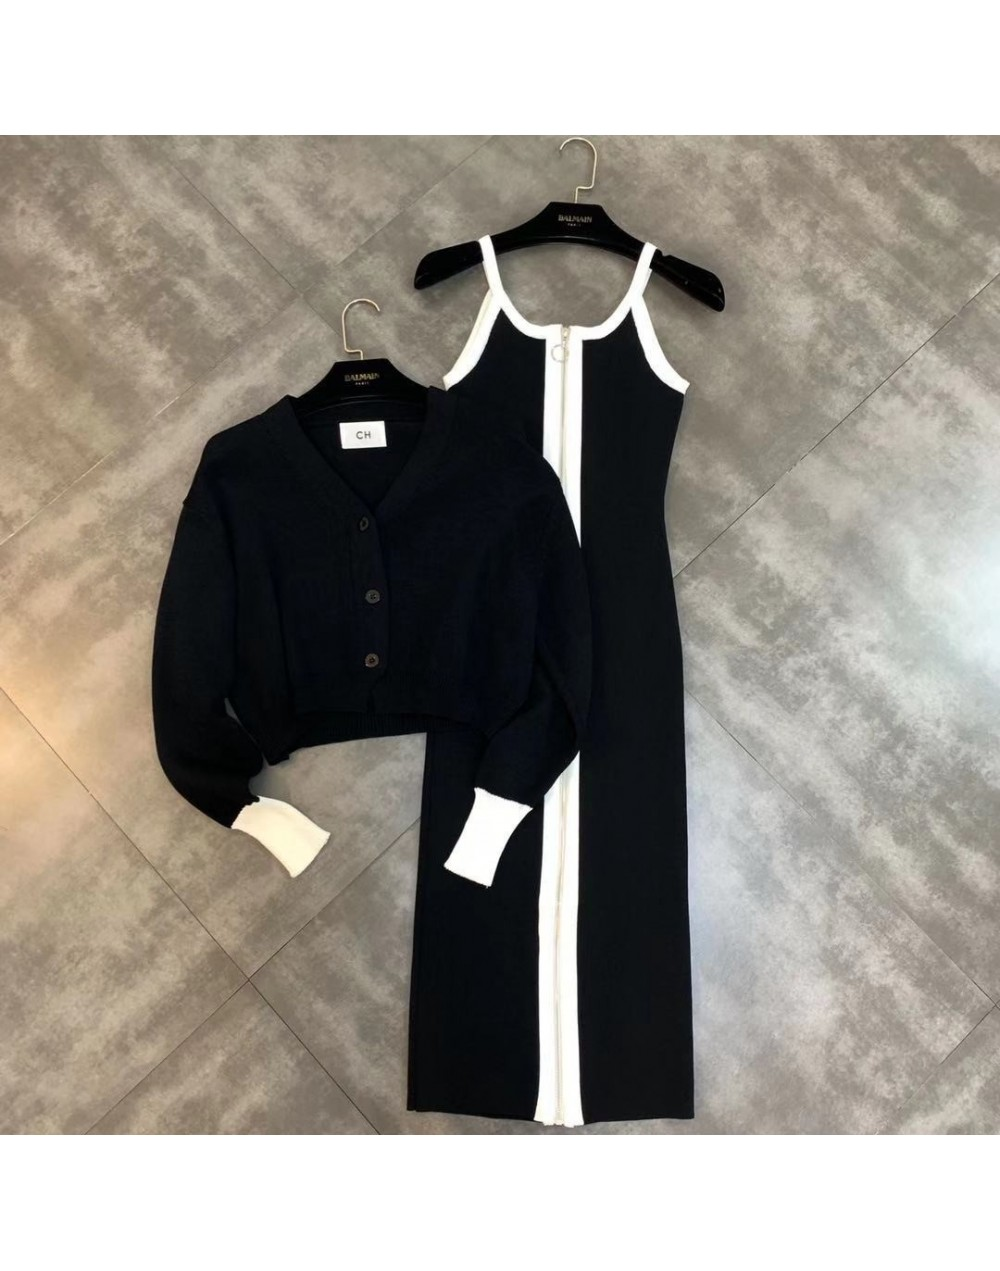 2019 autumn new color matching zip dress + knit jacket was thin two-piece suit - Black - 5V111229262156-2